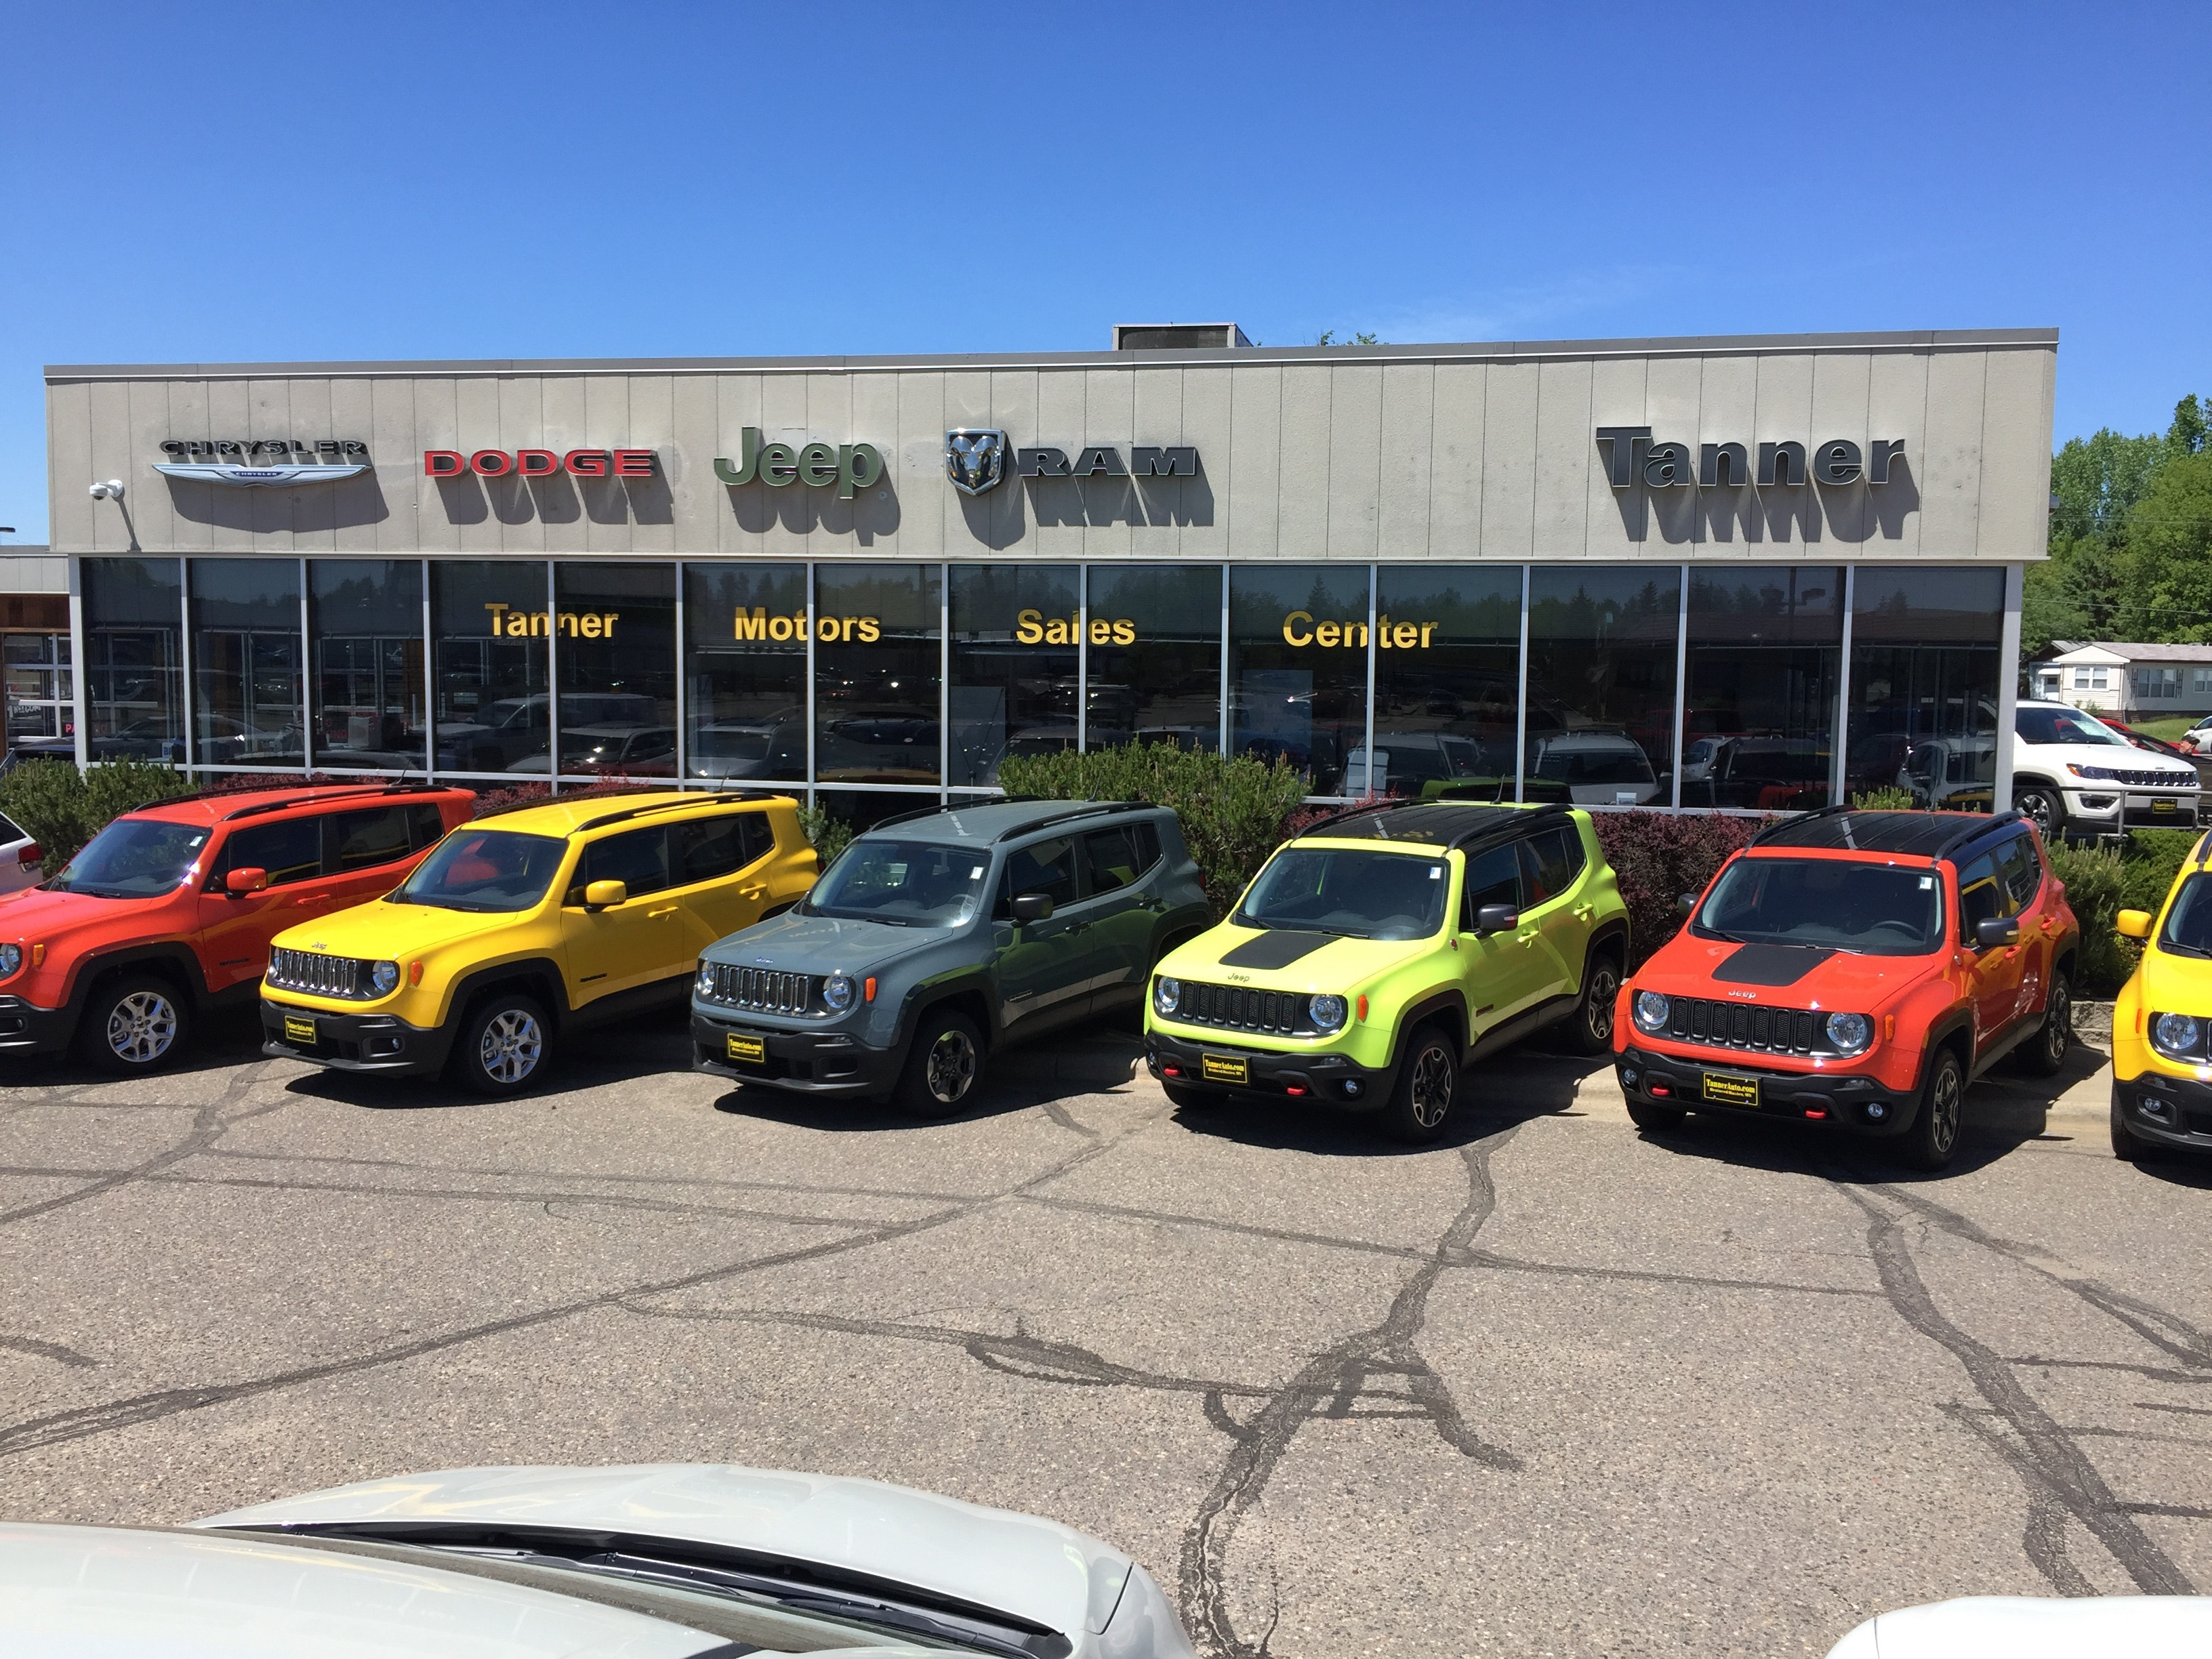 tanner motors coupons near me in brainerd 8coupons